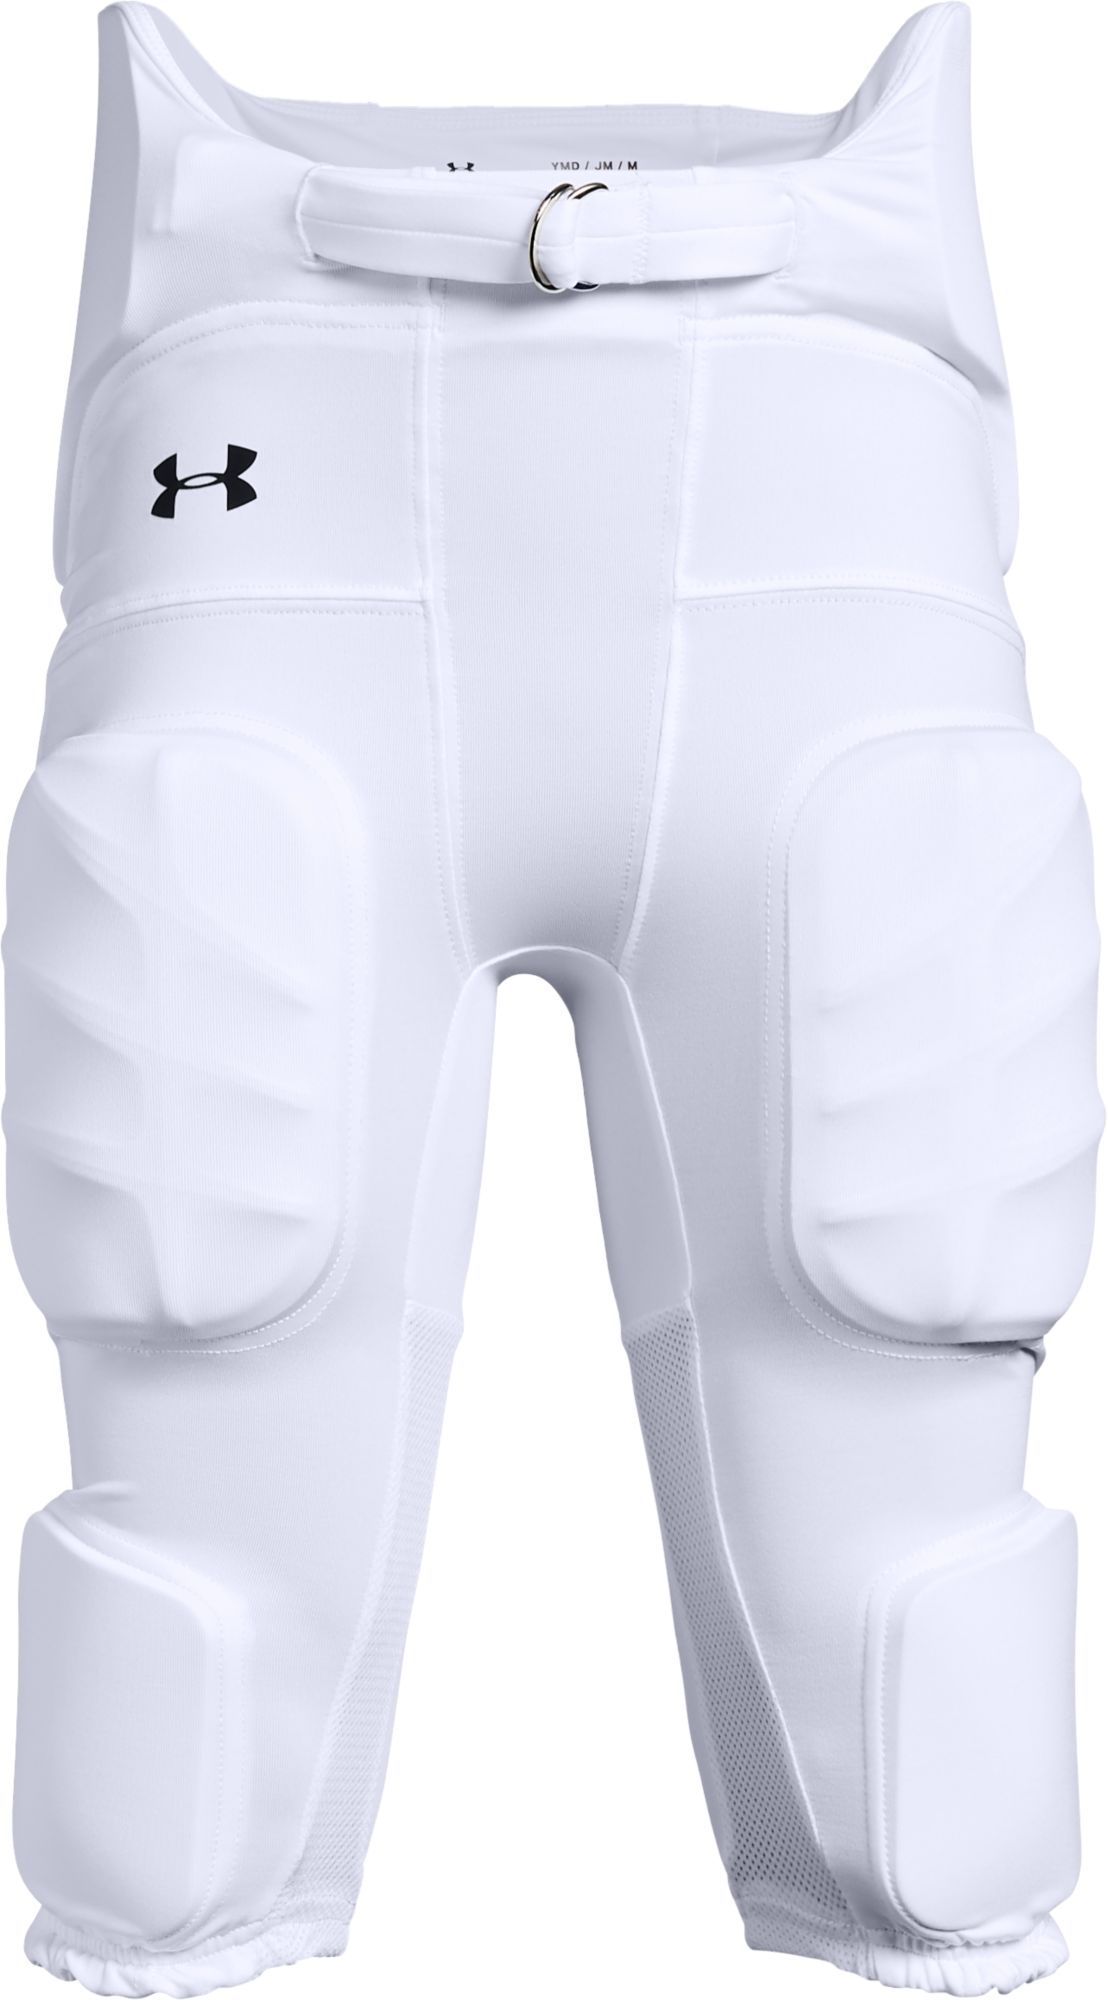 02f8df9f Under Armour Youth Integrated Football Pants, Size: Small, Black ...